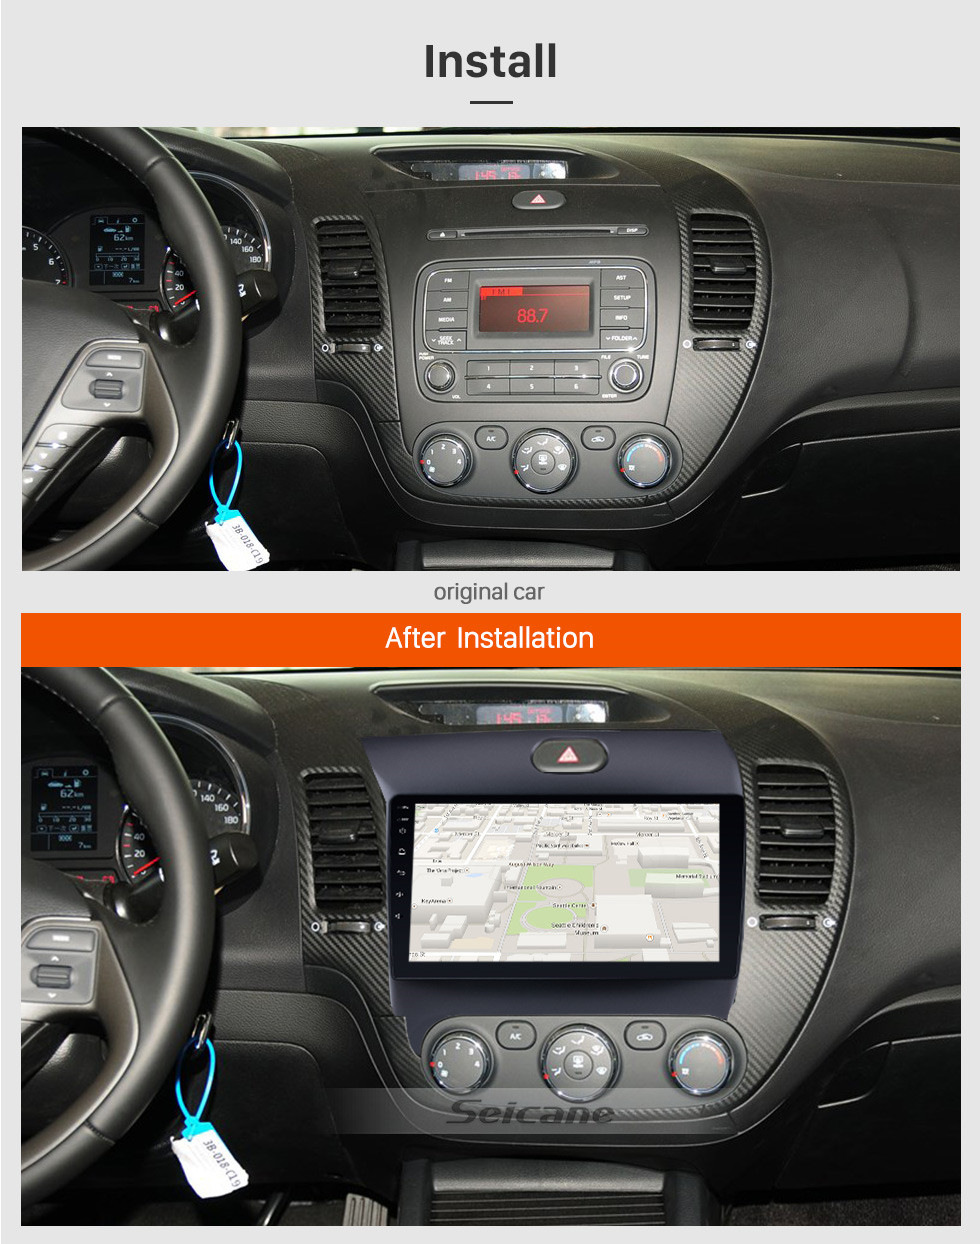 Seicane 9 Inch All-in-One Android 8.1 GPS Navigation system For 2013 2014 2015 2016 KIA K3 CERATO FORTE with Touch Screen TPMS DVR OBD II Rear camera AUX USB SD Steering Wheel Control 3G WiFi Video Radio Bluetooth